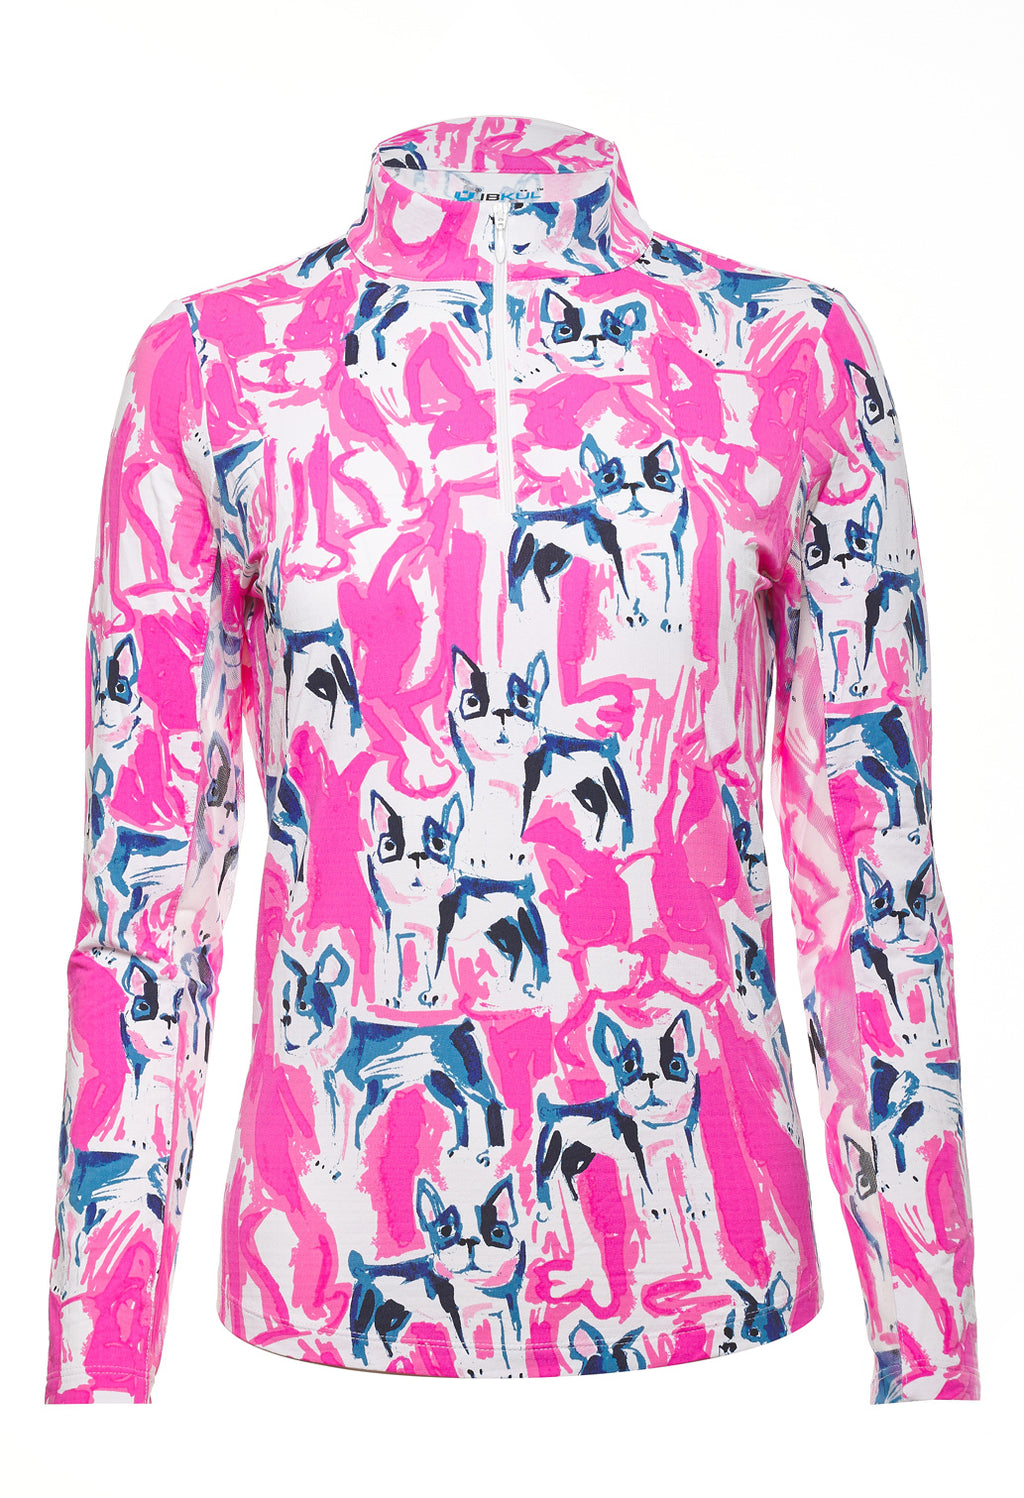 Ibkul Icifil Long Sleeve Sun Shirt: Frenchie Pink Print Mock - SPF 50